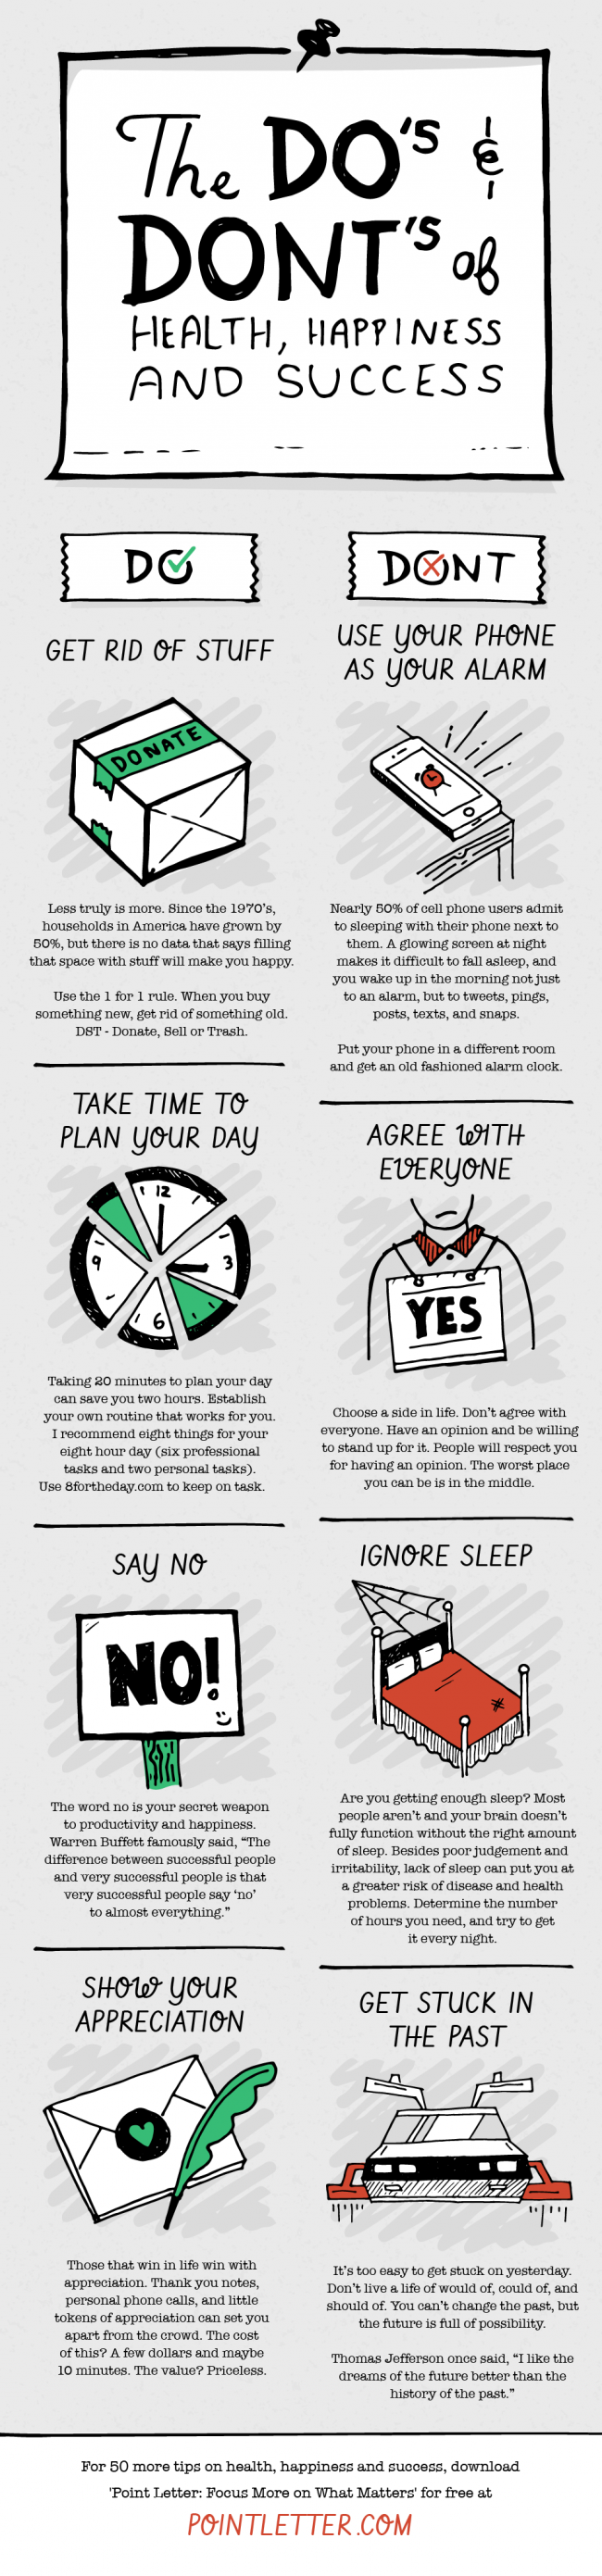 The Do's & Dont's of Health, Happiness and Success [Infographic]